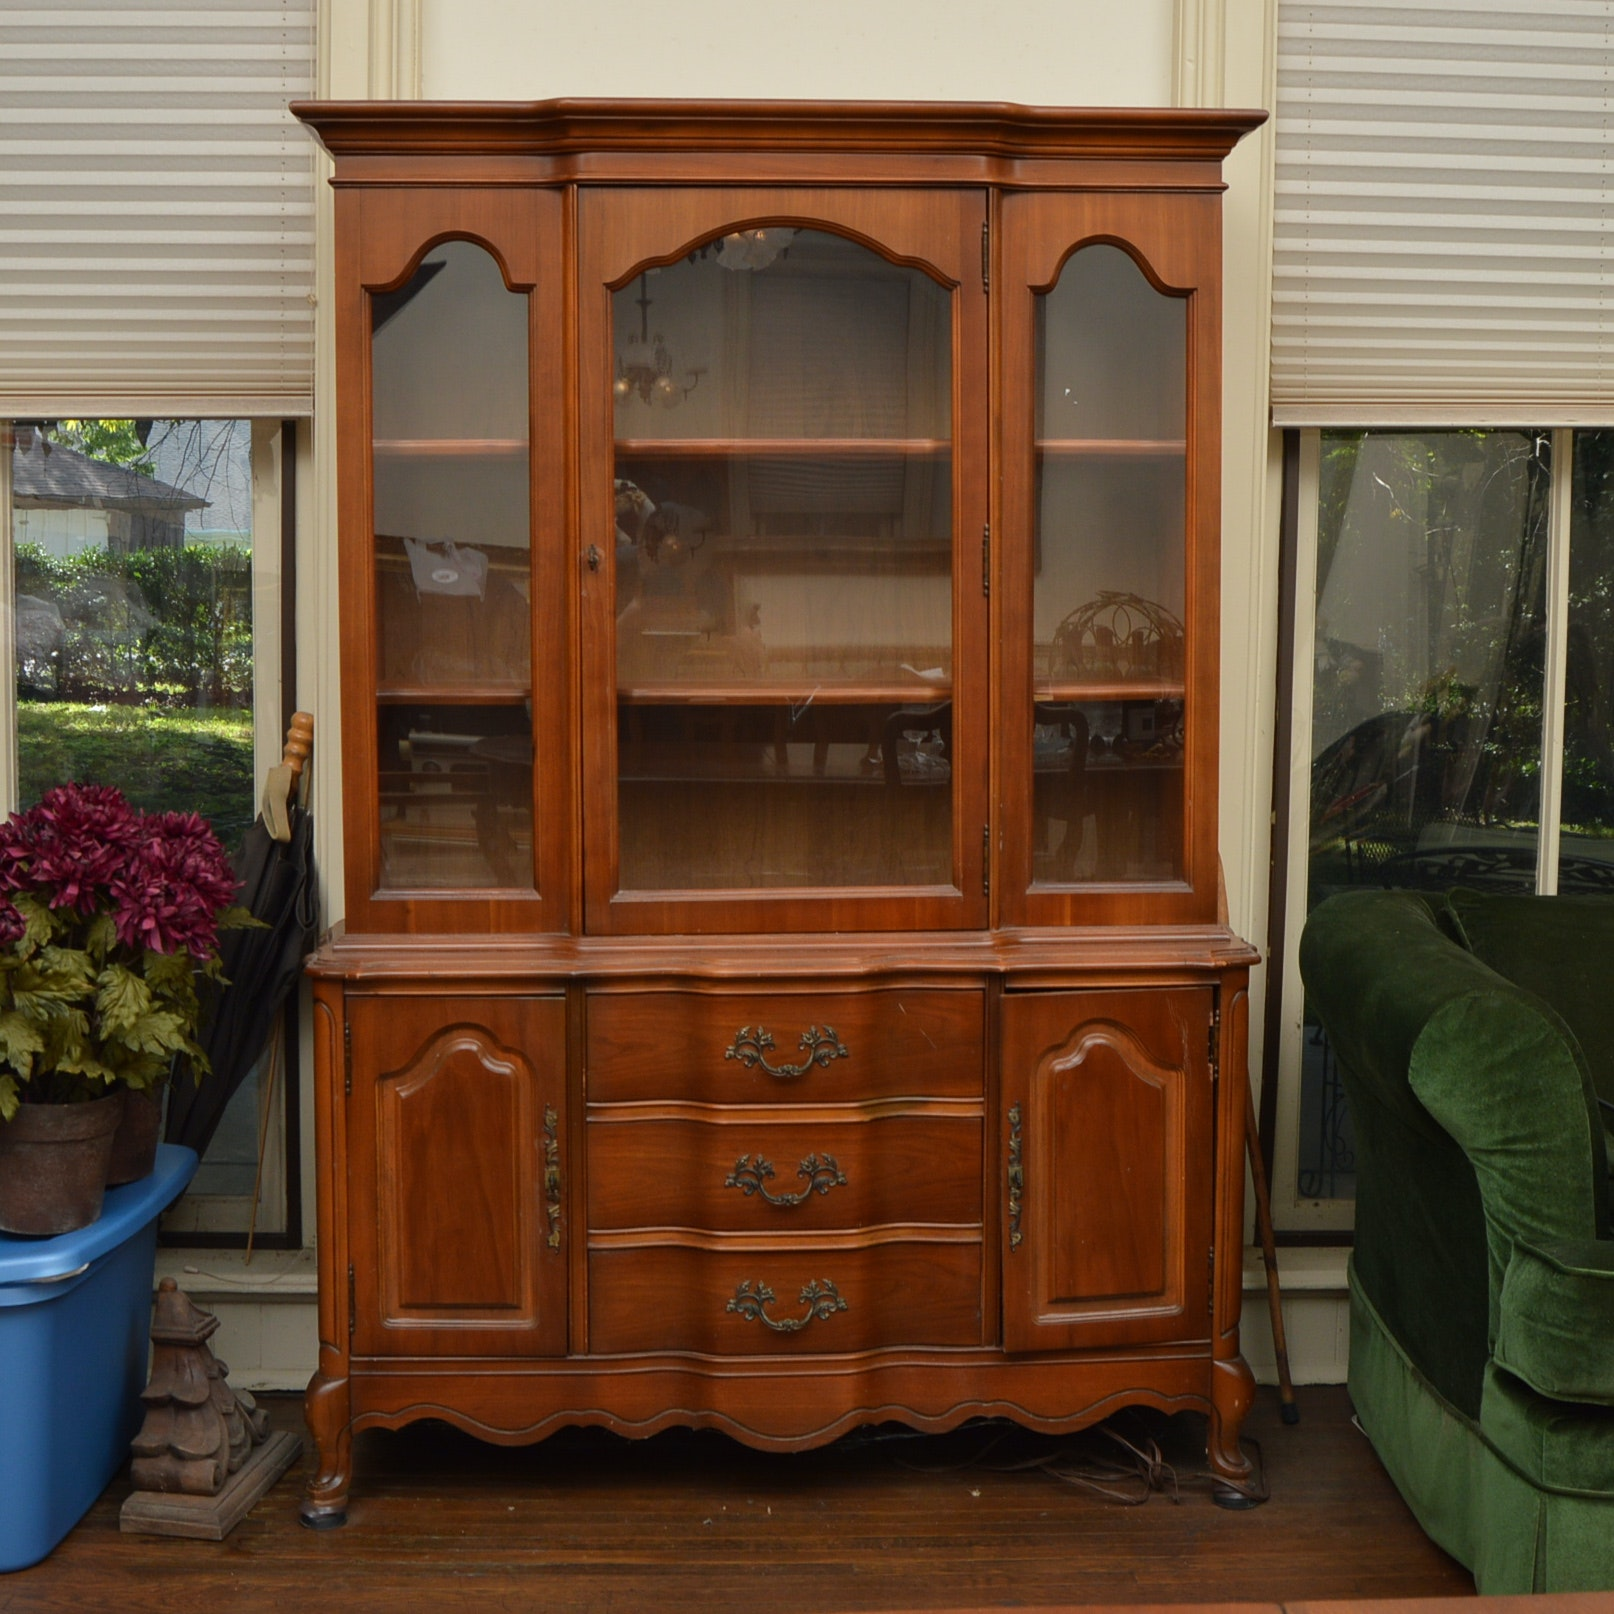 bassett furniture french provincial style china cabinet ebth rh ebth com vintage bassett furniture china cabinet Vintage Bassett Furniture